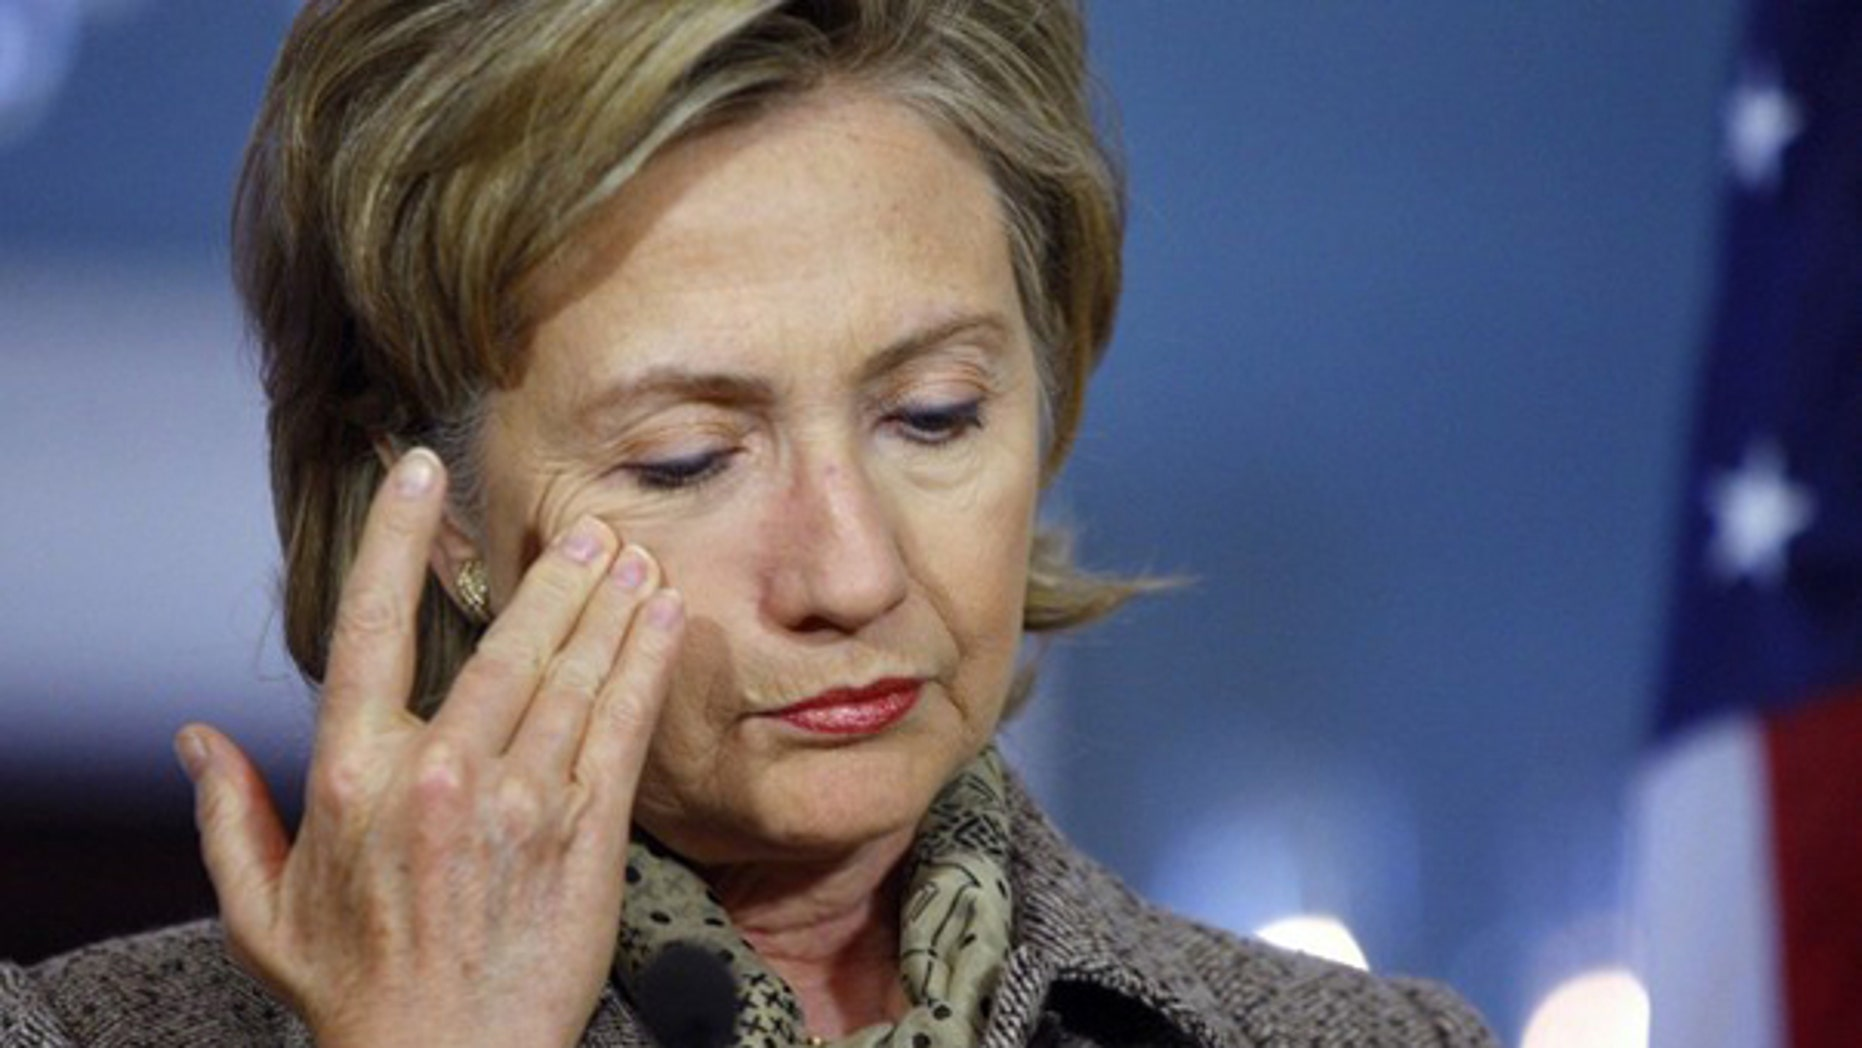 Hillary Clinton wipes her face during a press conference in Washington.